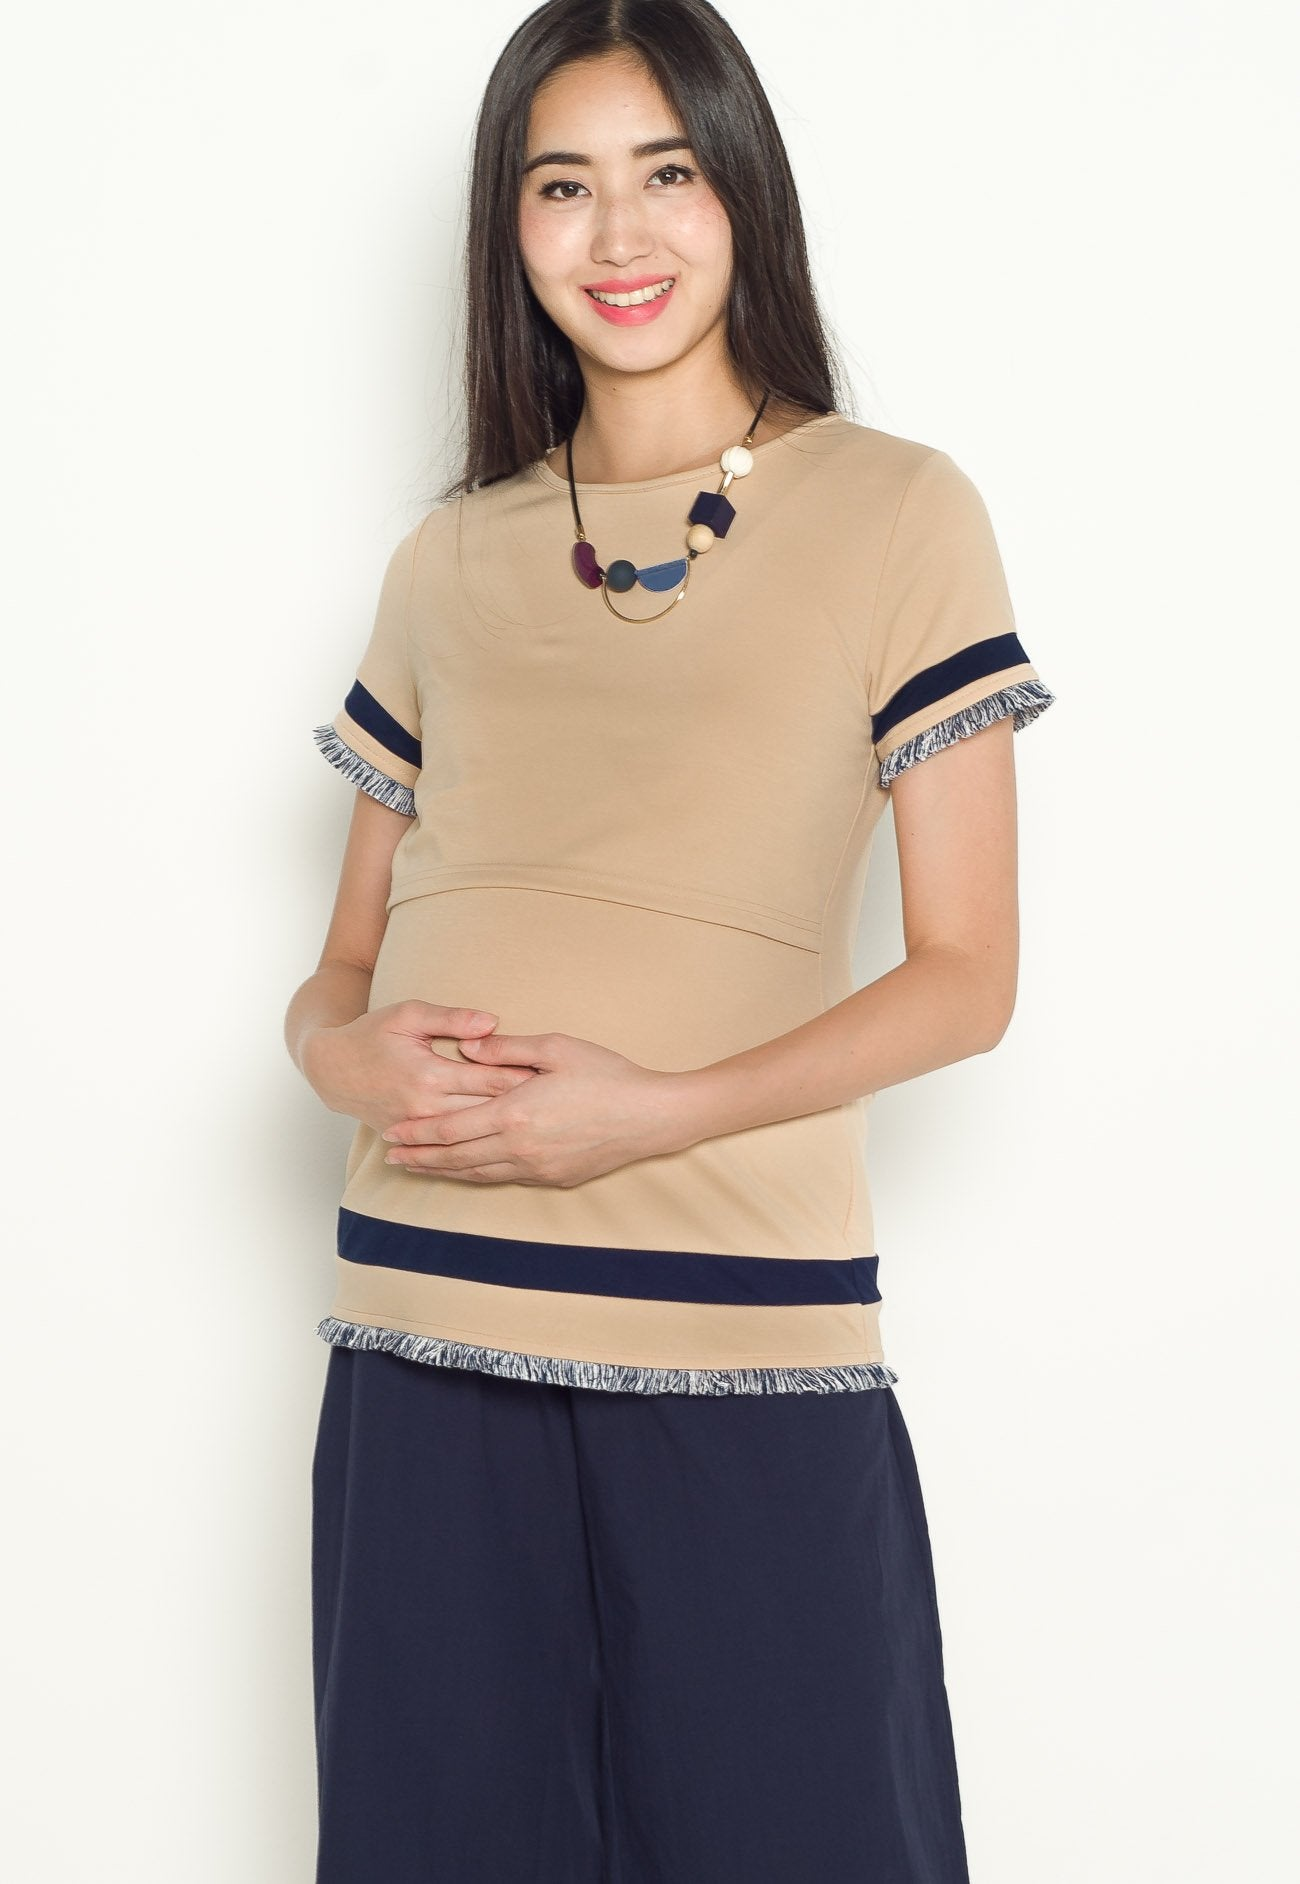 Hana Frills Nursing Top in Beige  by Jump Eat Cry - Maternity and nursing wear